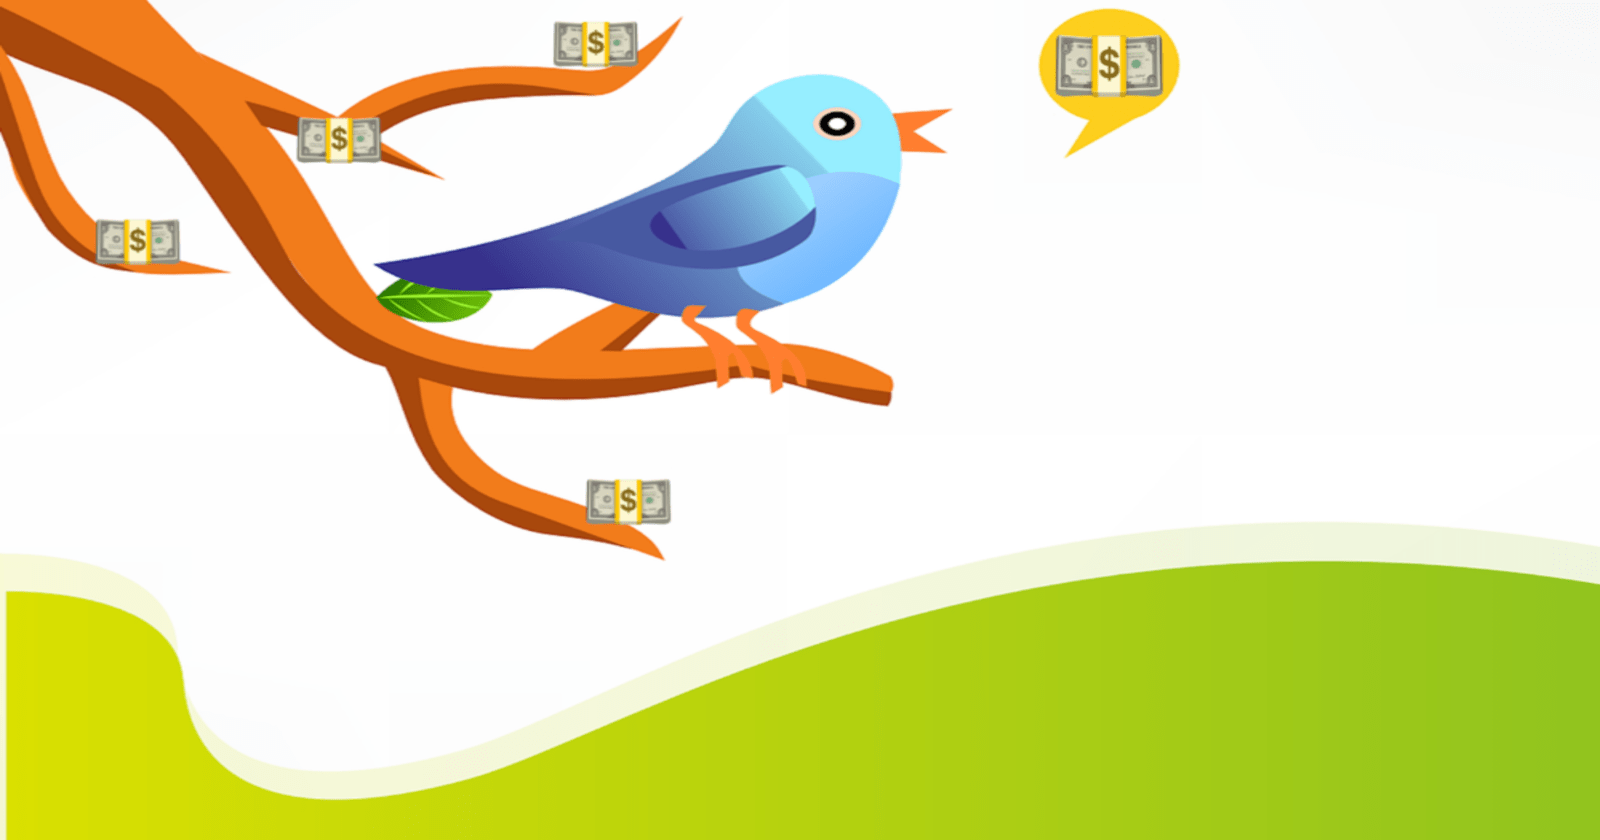 Why (And How) to Buy Twitter Followers by @clarkboyd